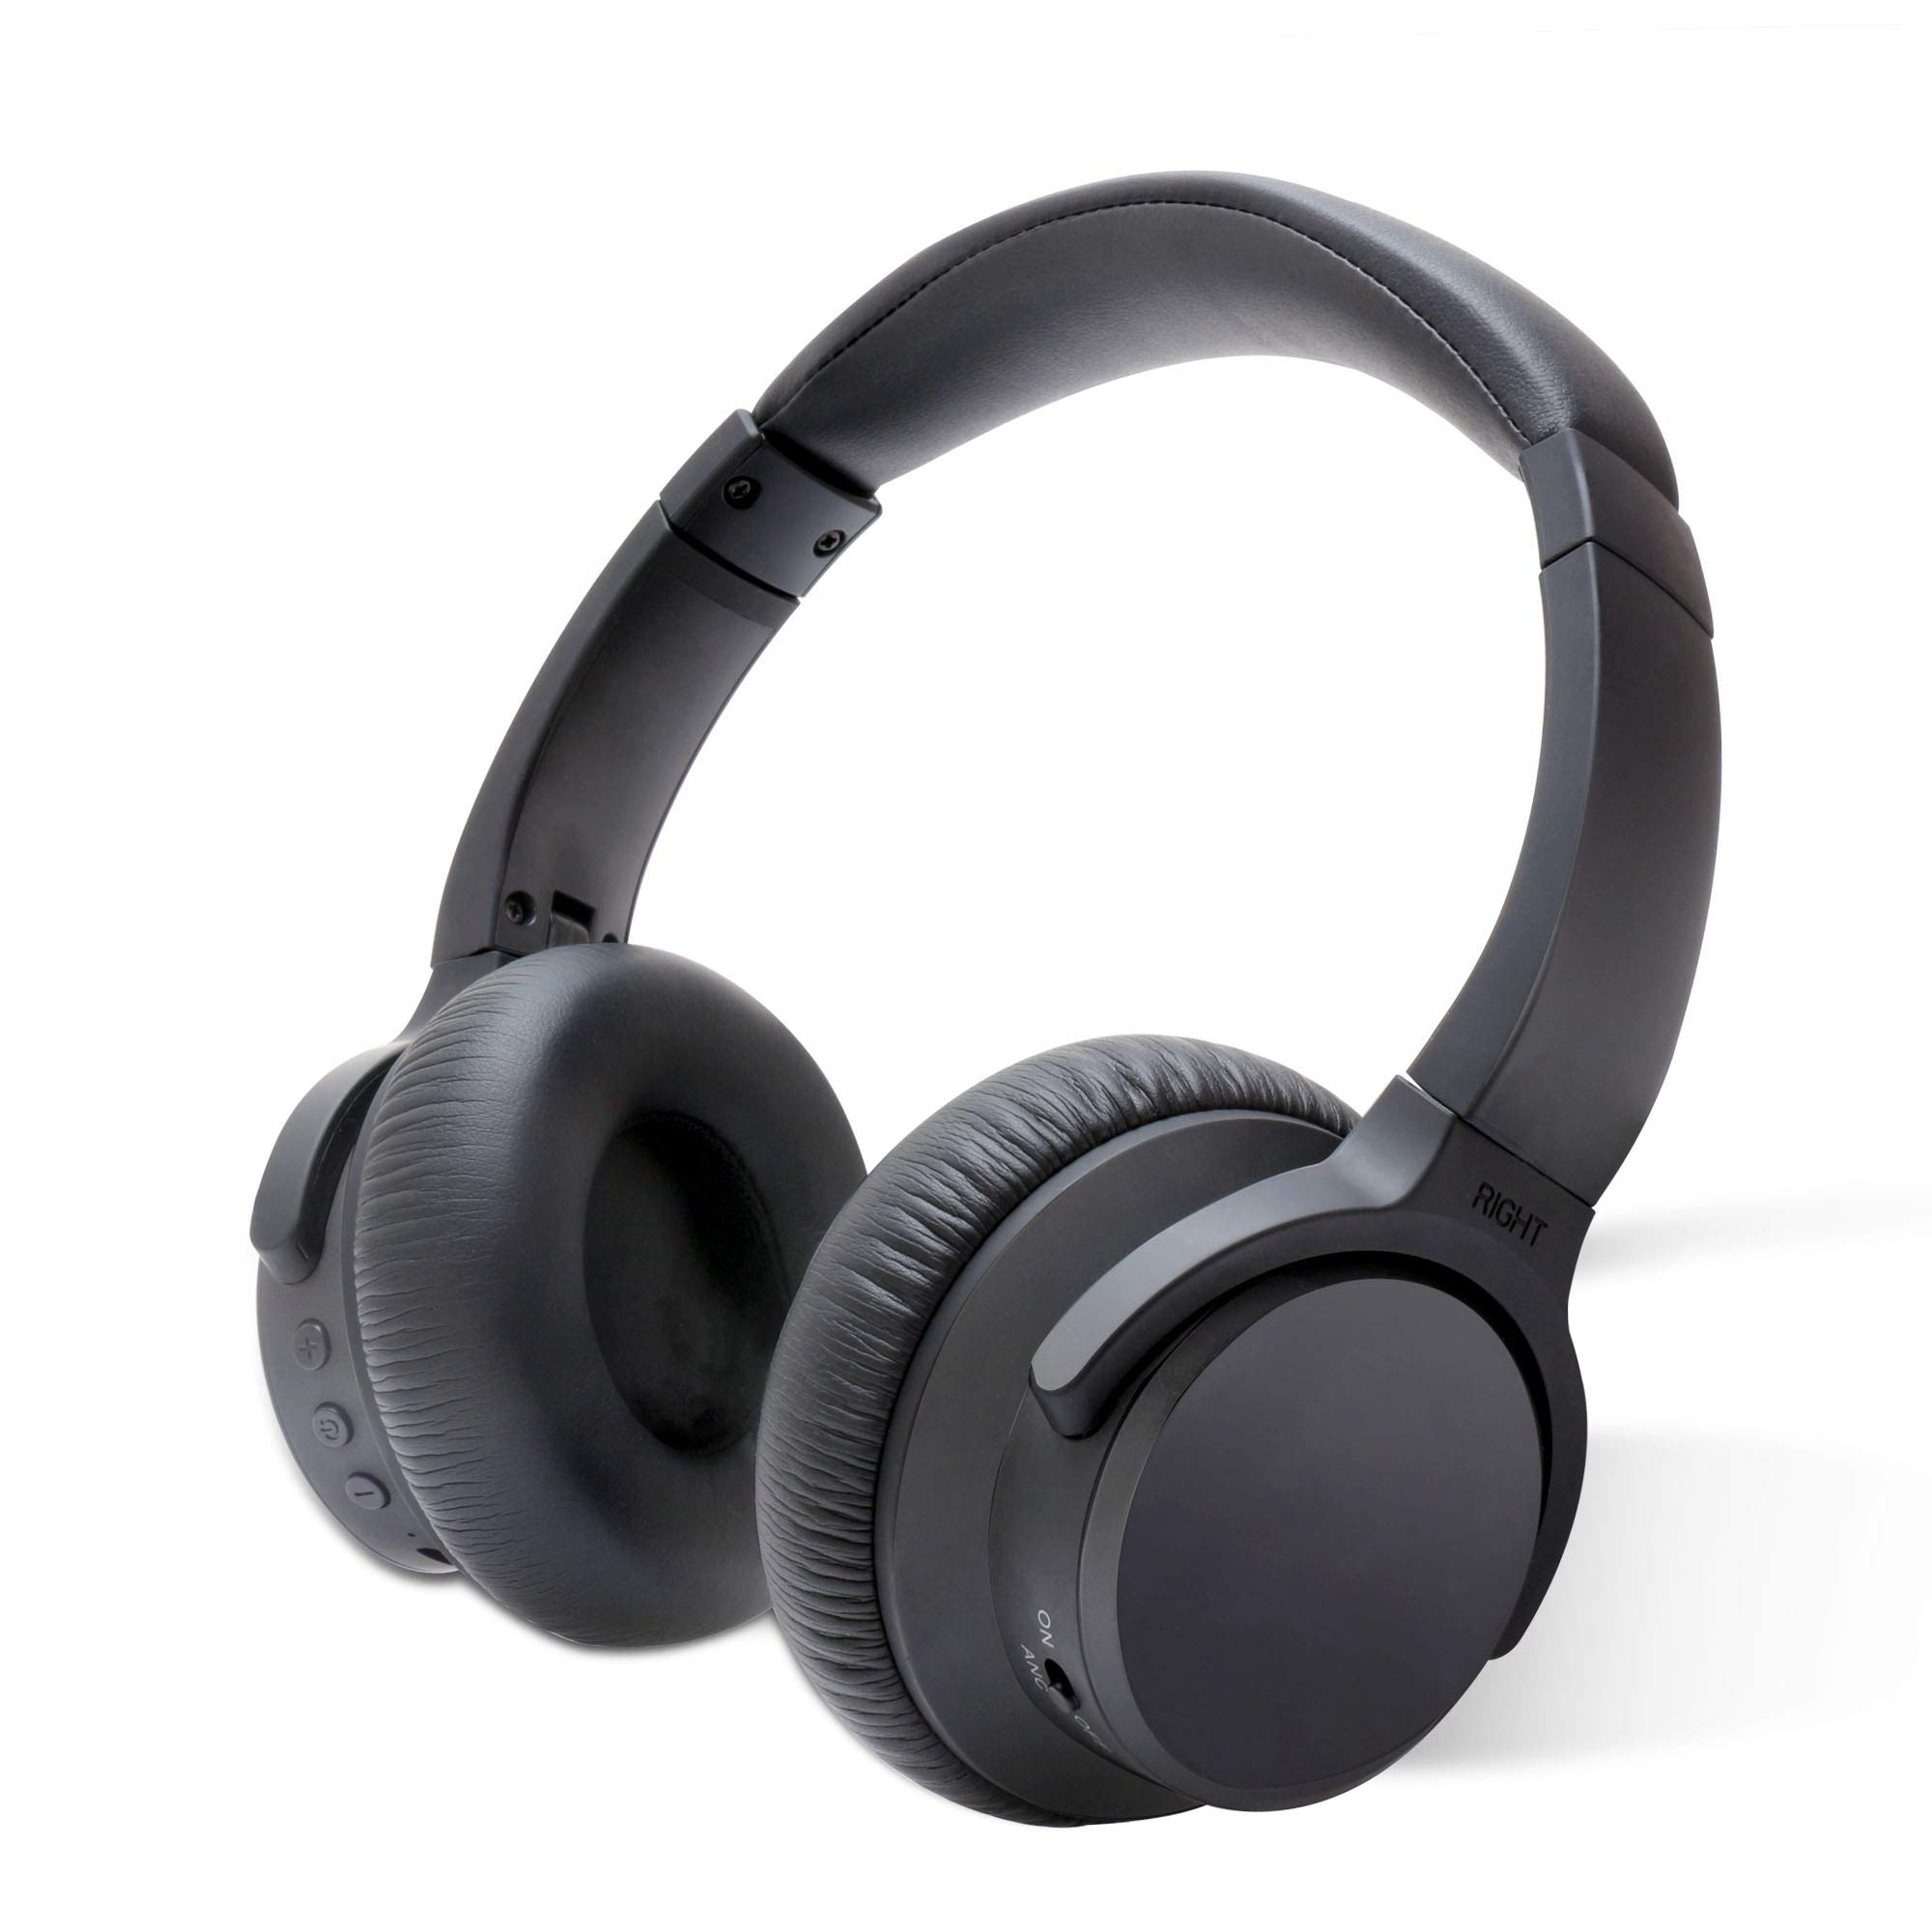 Auriculares Cancelacion de Ruido Activa HiFi Bass Stereo Headset ANC Bluetooth Plegable Compatible con Bluetooth Devices